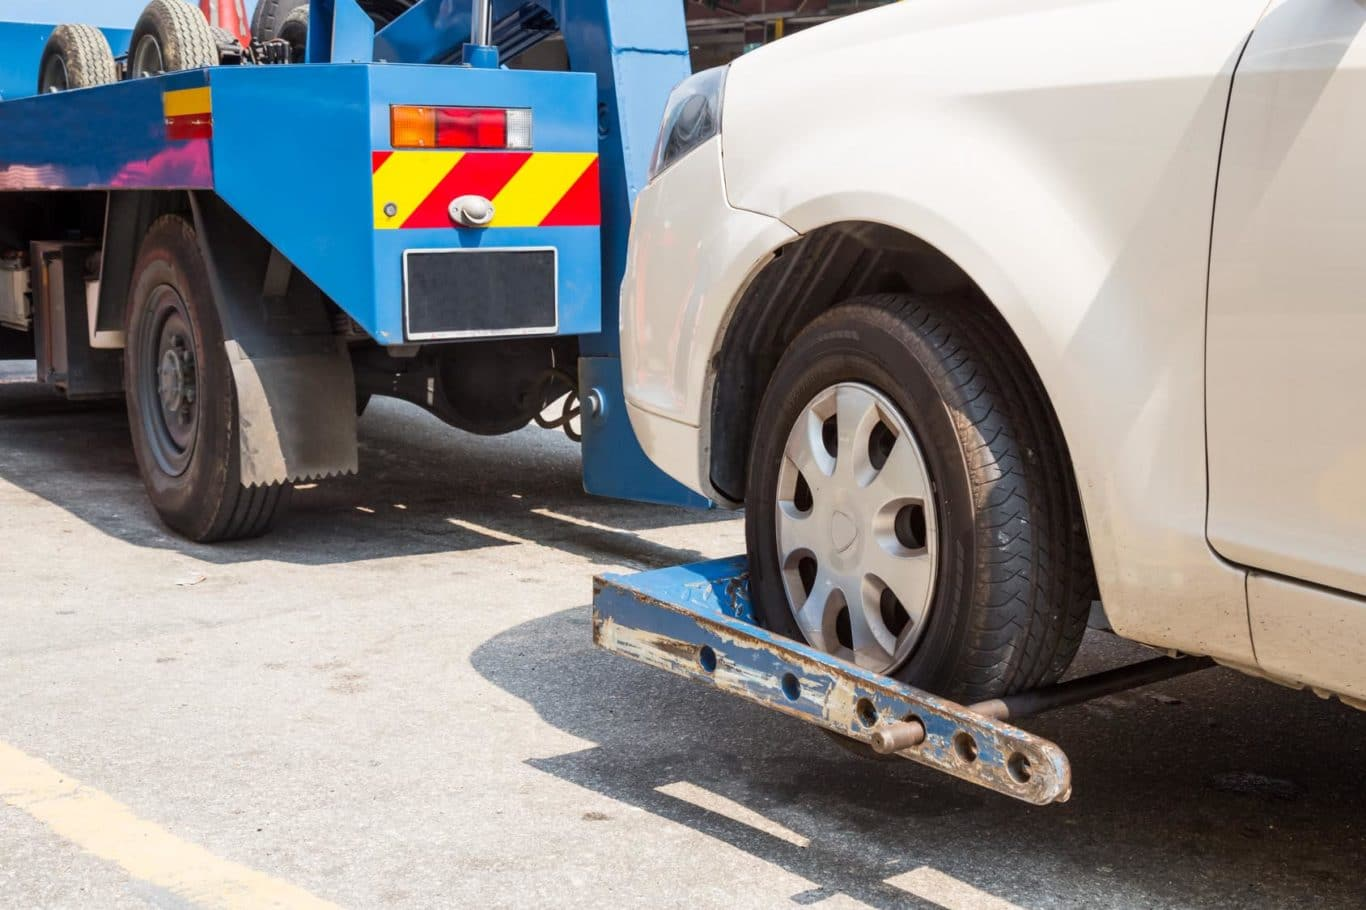 Curraha expert Car Towing services